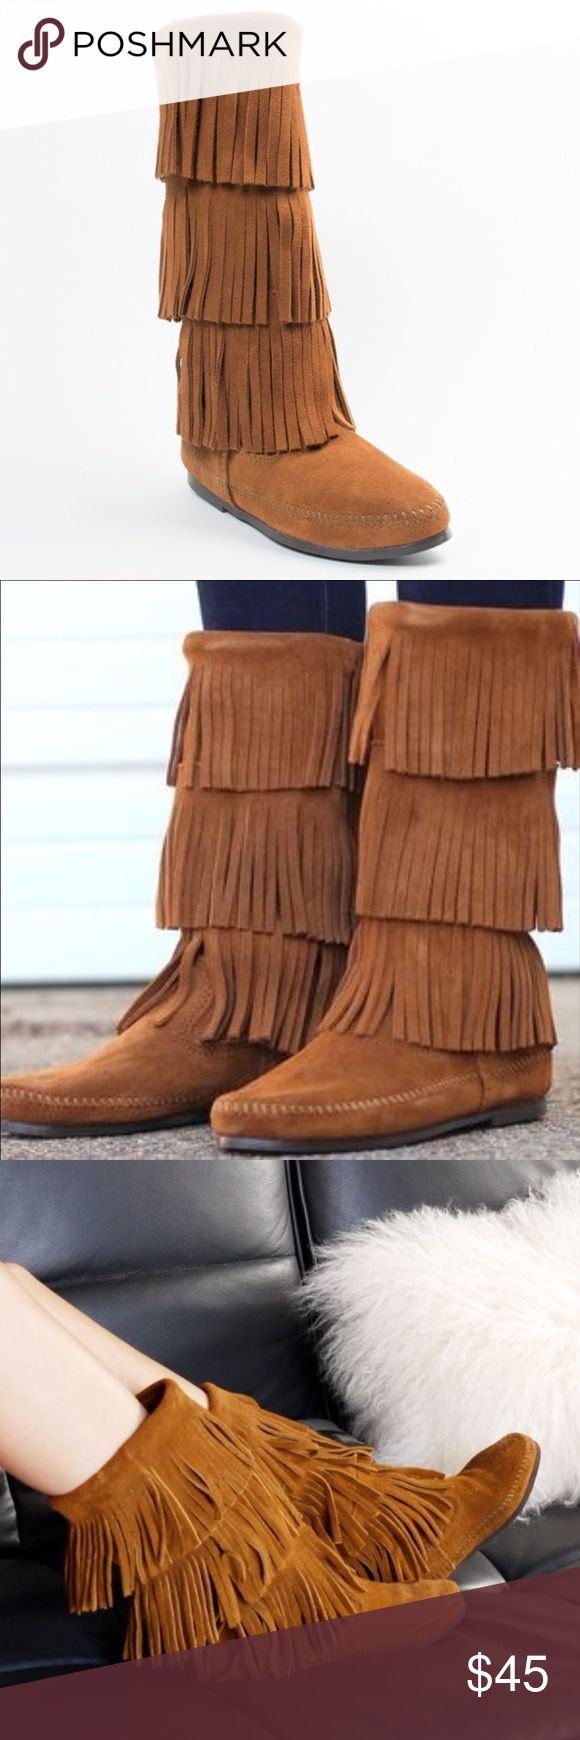 """MINNETONKA 3 Layer Fringe Suede Moccasin Boots 6 Stylish mid-calf boot from Minnetonka Soft suede uppers are breathable and mold to your feet with each step. Striking fringe detail offers bold tribal influence for lasting appeal. Convenient slip-on silhouette ensures easy on-and-off wear. Lightweight rubber outsole delivers long-lasting durability on a variety of surfaces. Size 6. Measures 9 1/2"""" across bottom sole. Color is Dusty Brown. Purchased from Nordstrom for $98. Worn only once with…"""